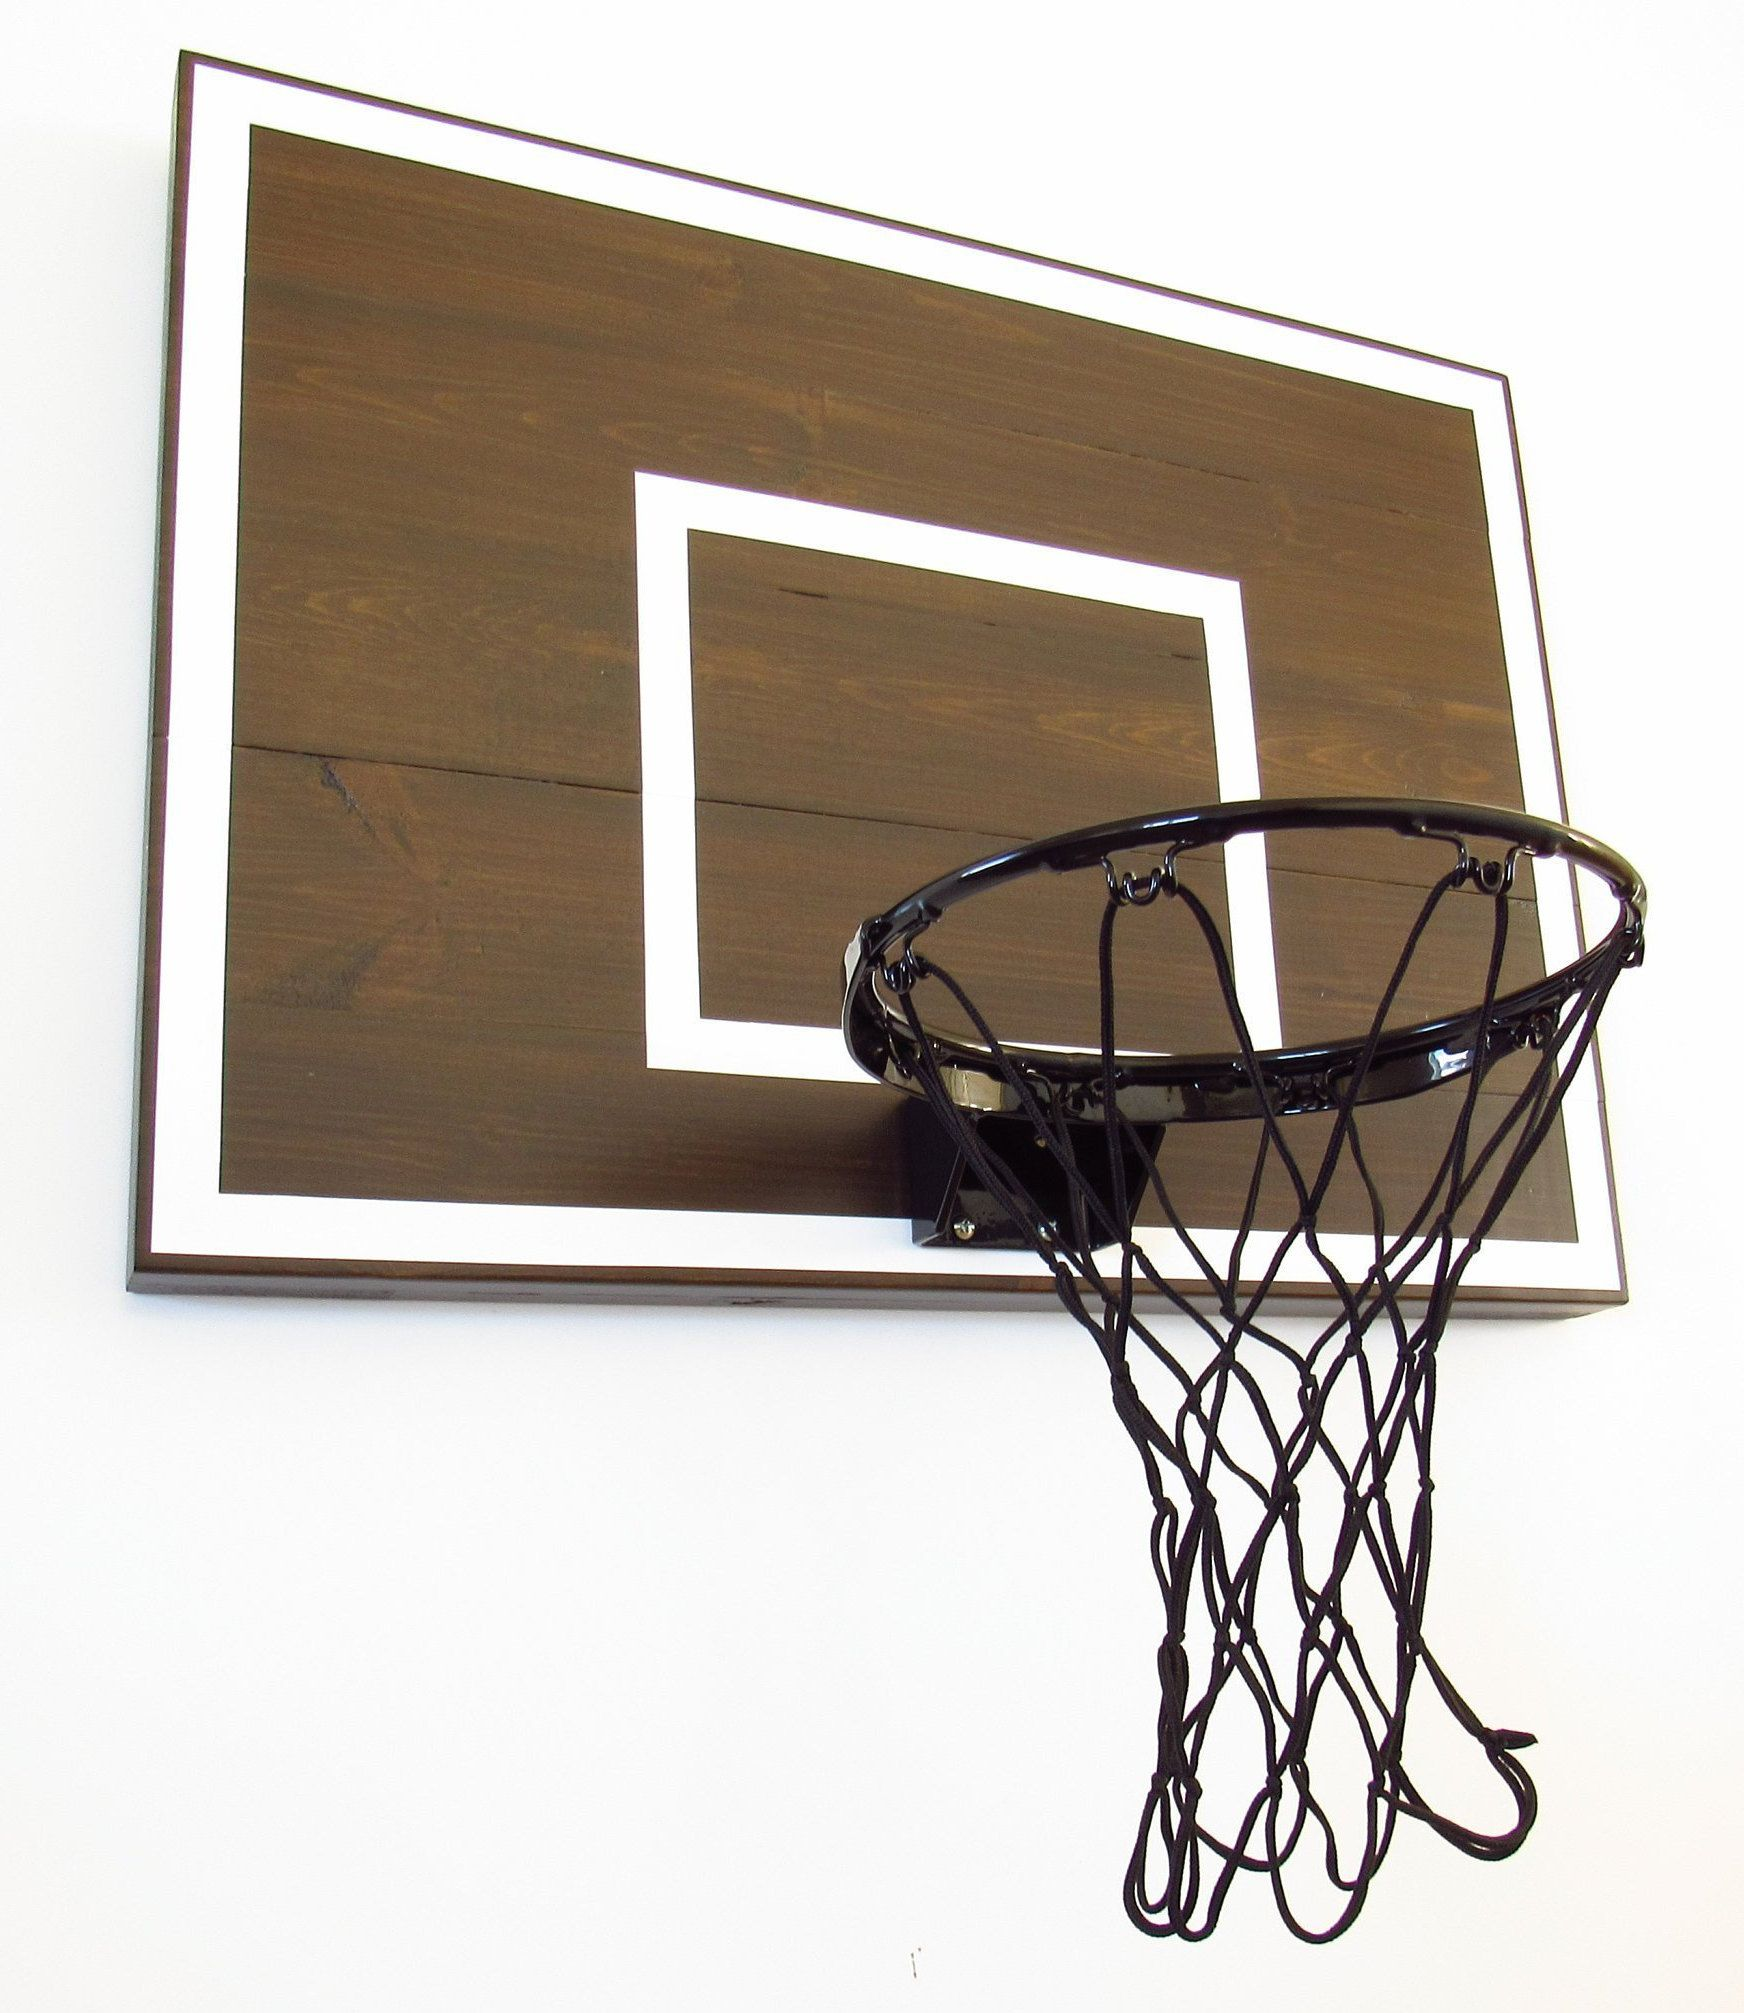 Modern Basketball Hoop For Bedroom Birthdays Players Men Etsy Sports Decorations Decor Basketball Hoop